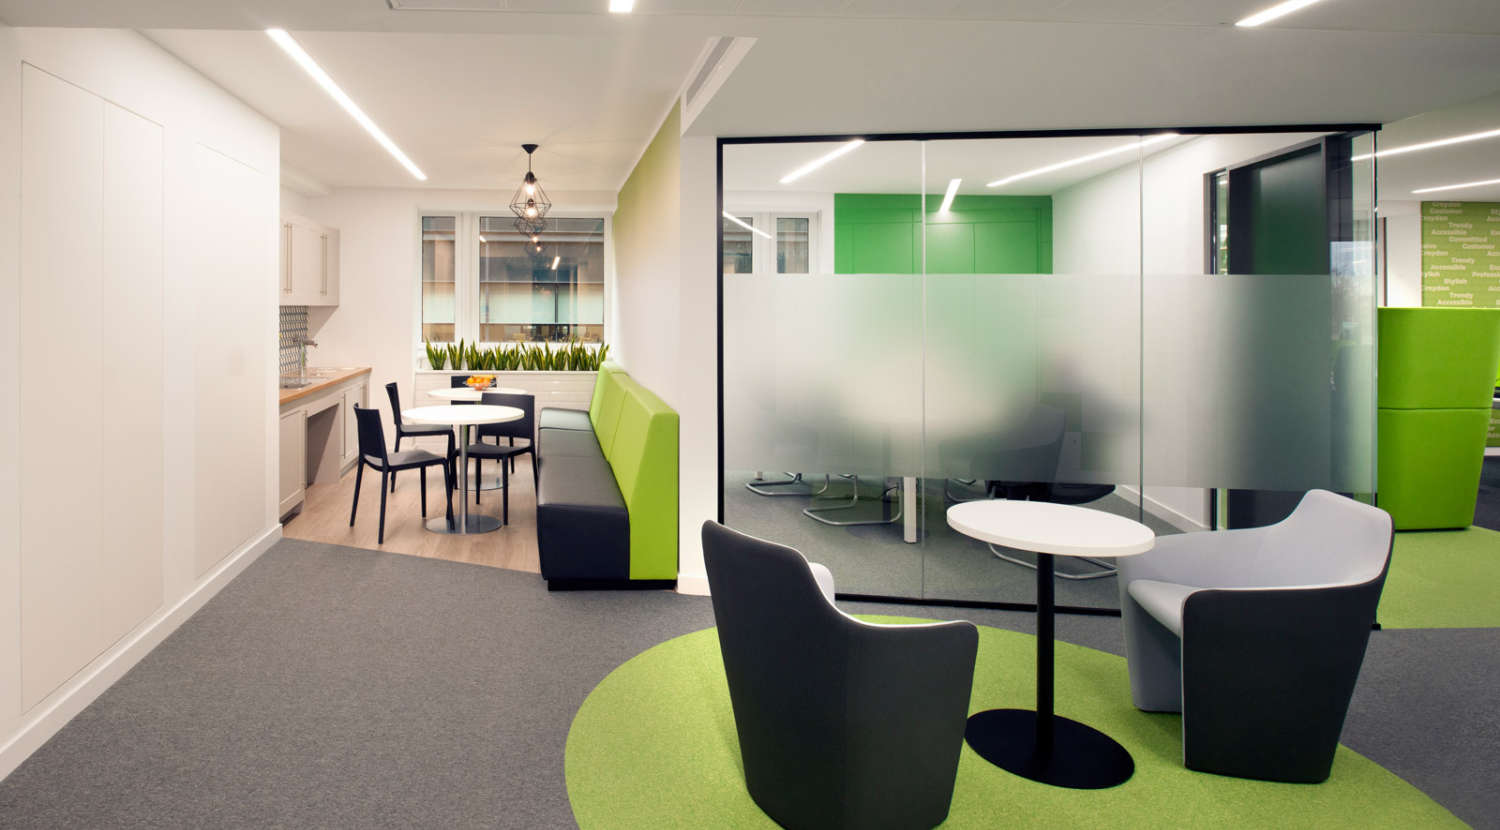 Varied meeting spaces with green design touches